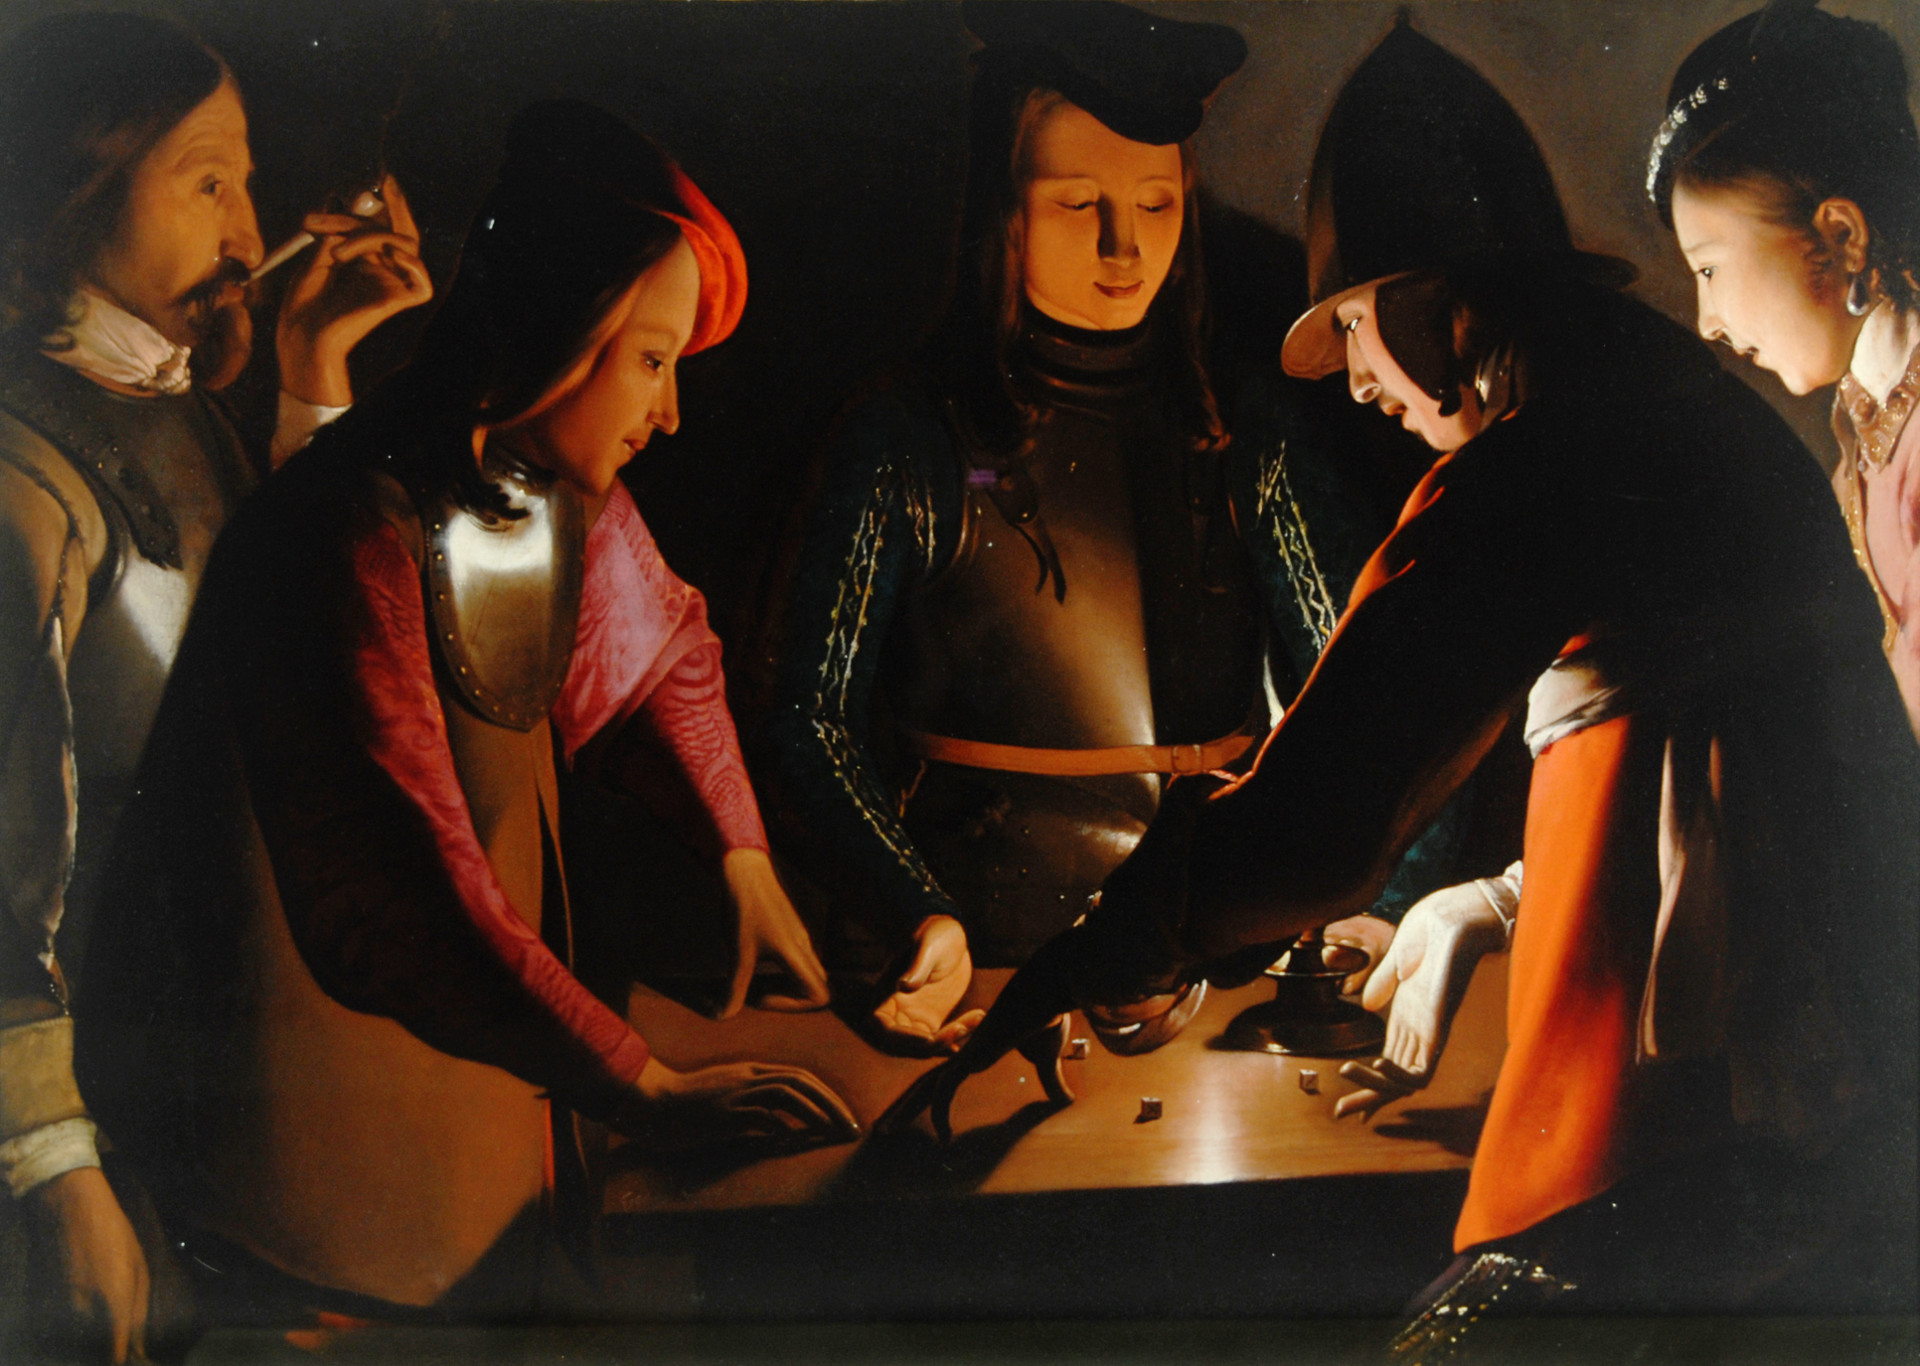 04_Georges de La Tour, I giocatori di dadi (The dice Players), 1651 ca, olio su tela, 95,5x130,5, Preston Park Museum & Grounds, Stockton-On-Tees, Regno Unito